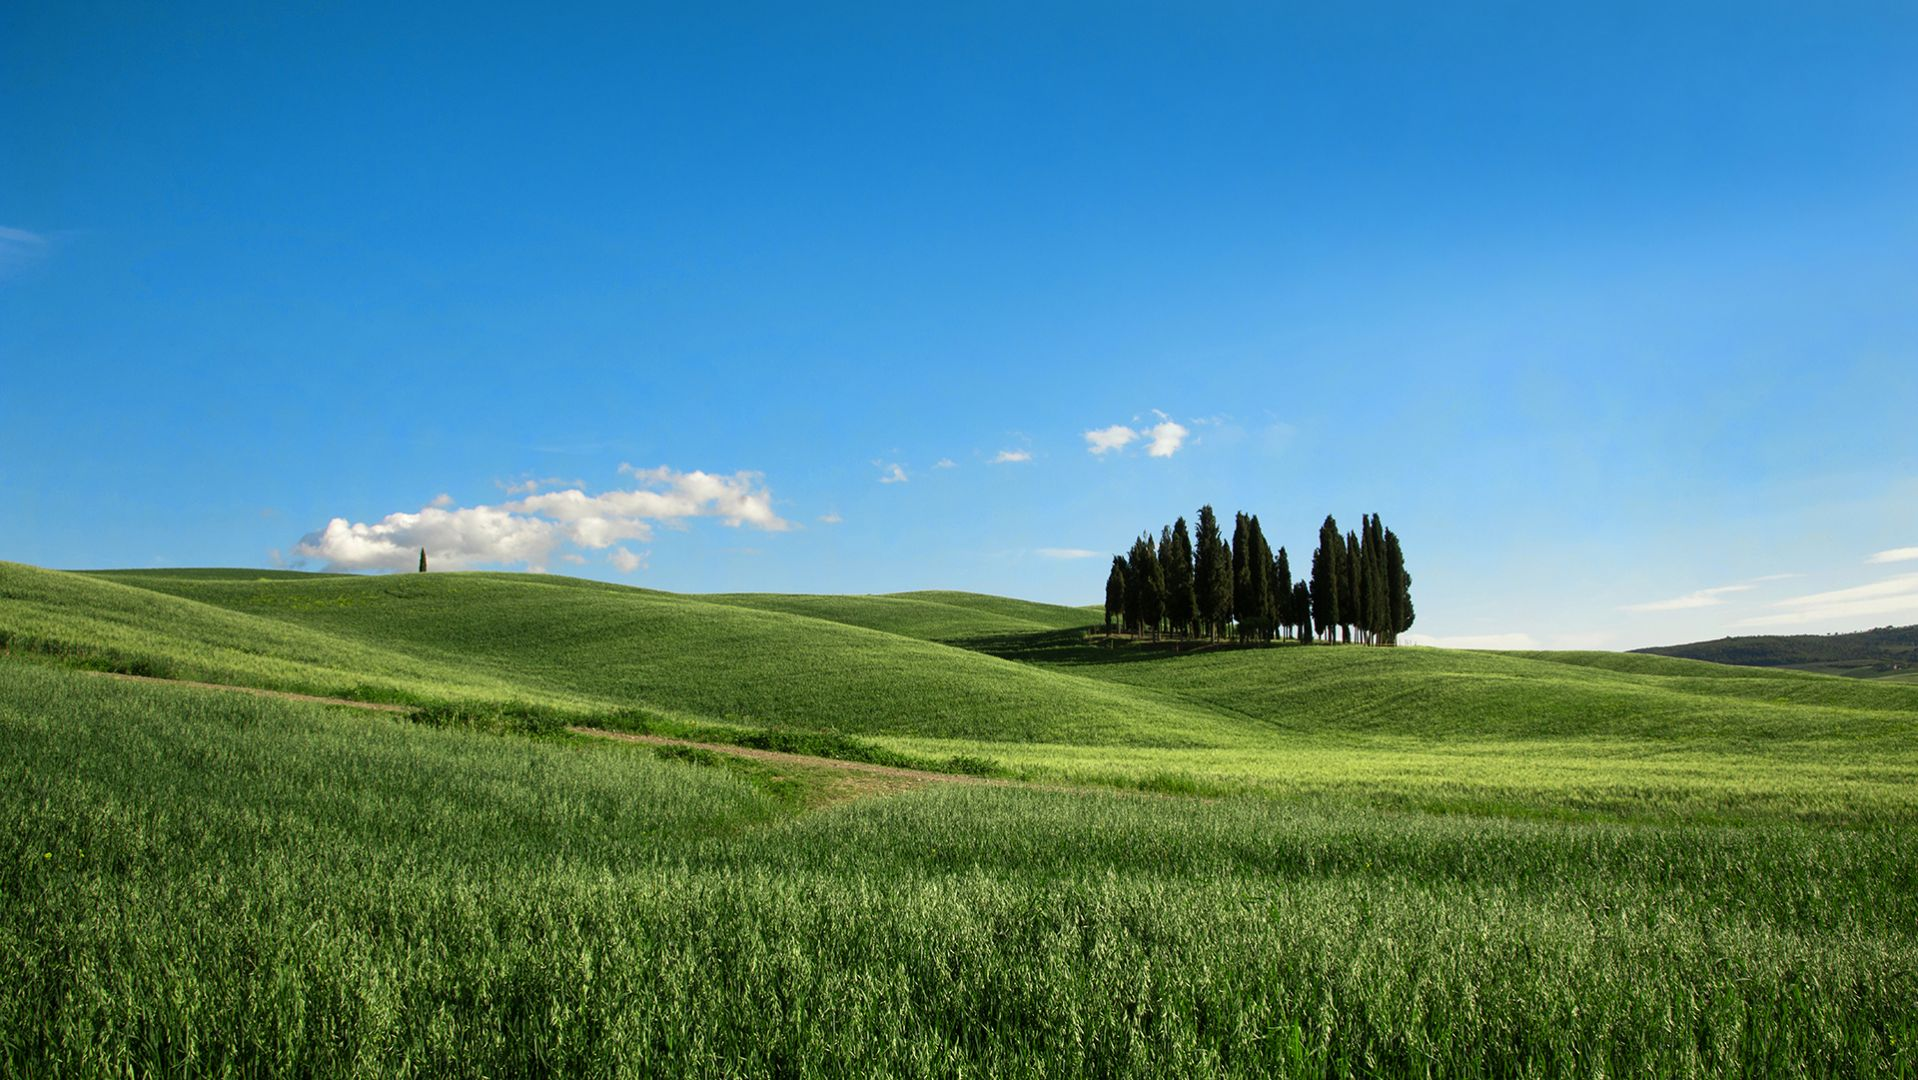 Orcia-Tal